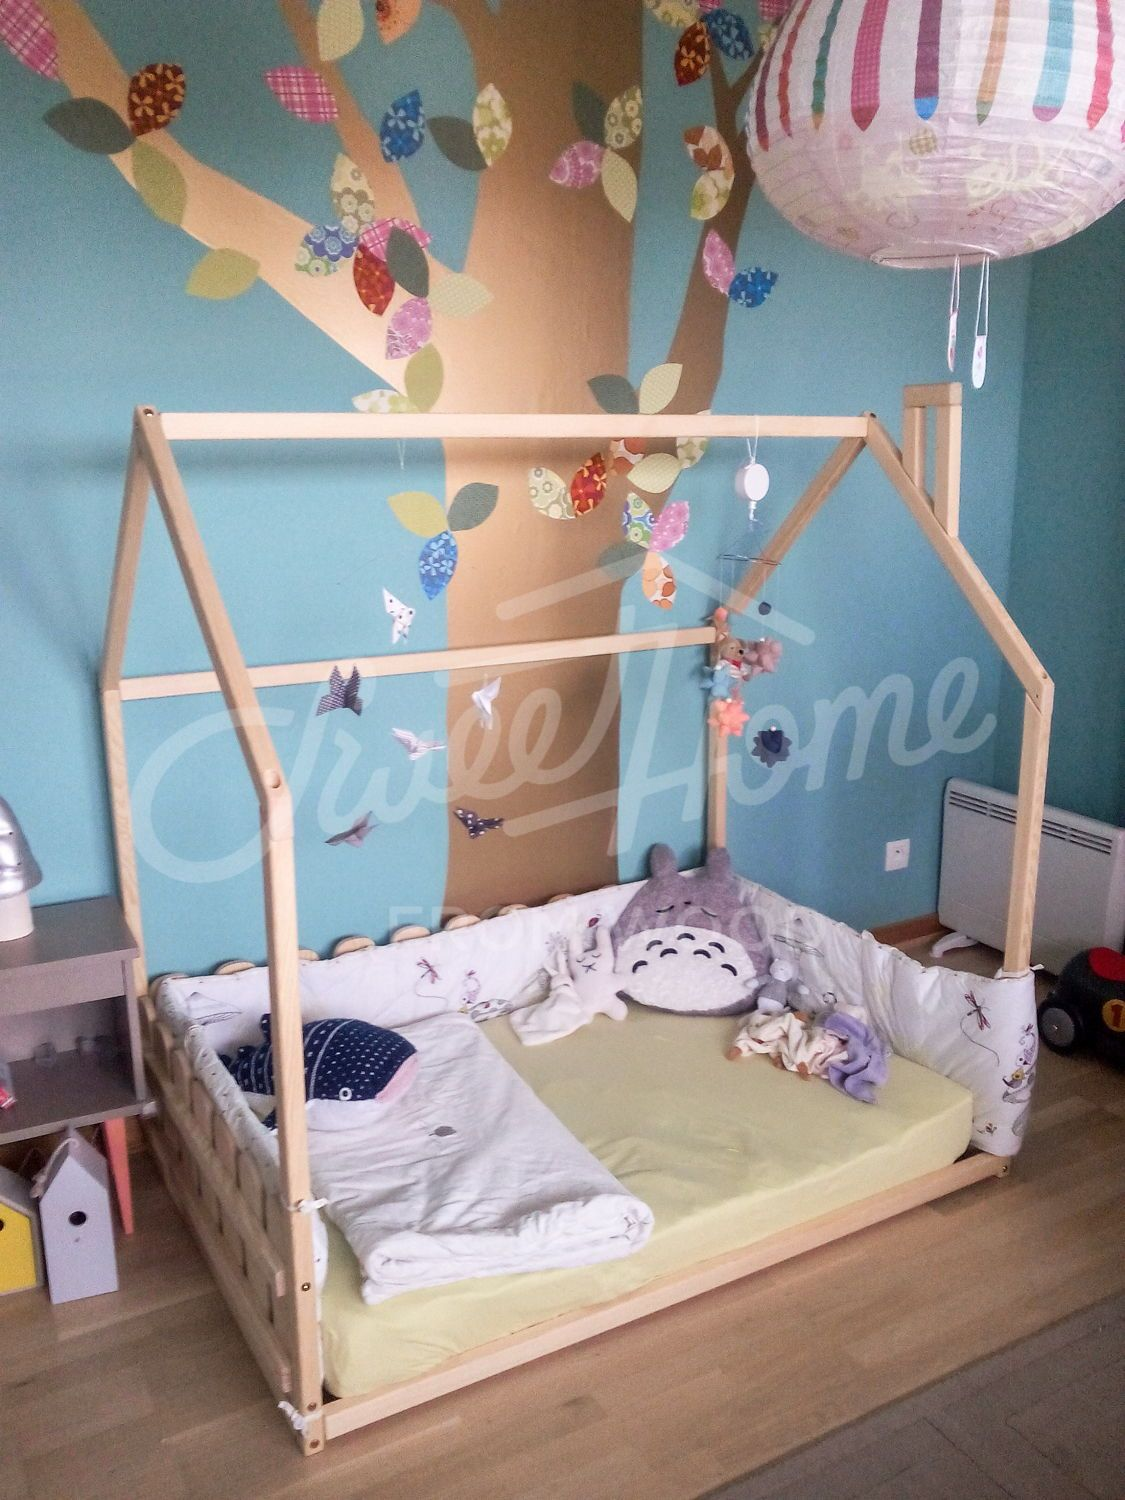 Baby Bed Twin Bed Frame Kids Teepee Tent Bed Is Wood House Bed For Children Bedroom And Montessori Toys In 2020 Toddler Bed Frame Kids Room Accessories House Beds